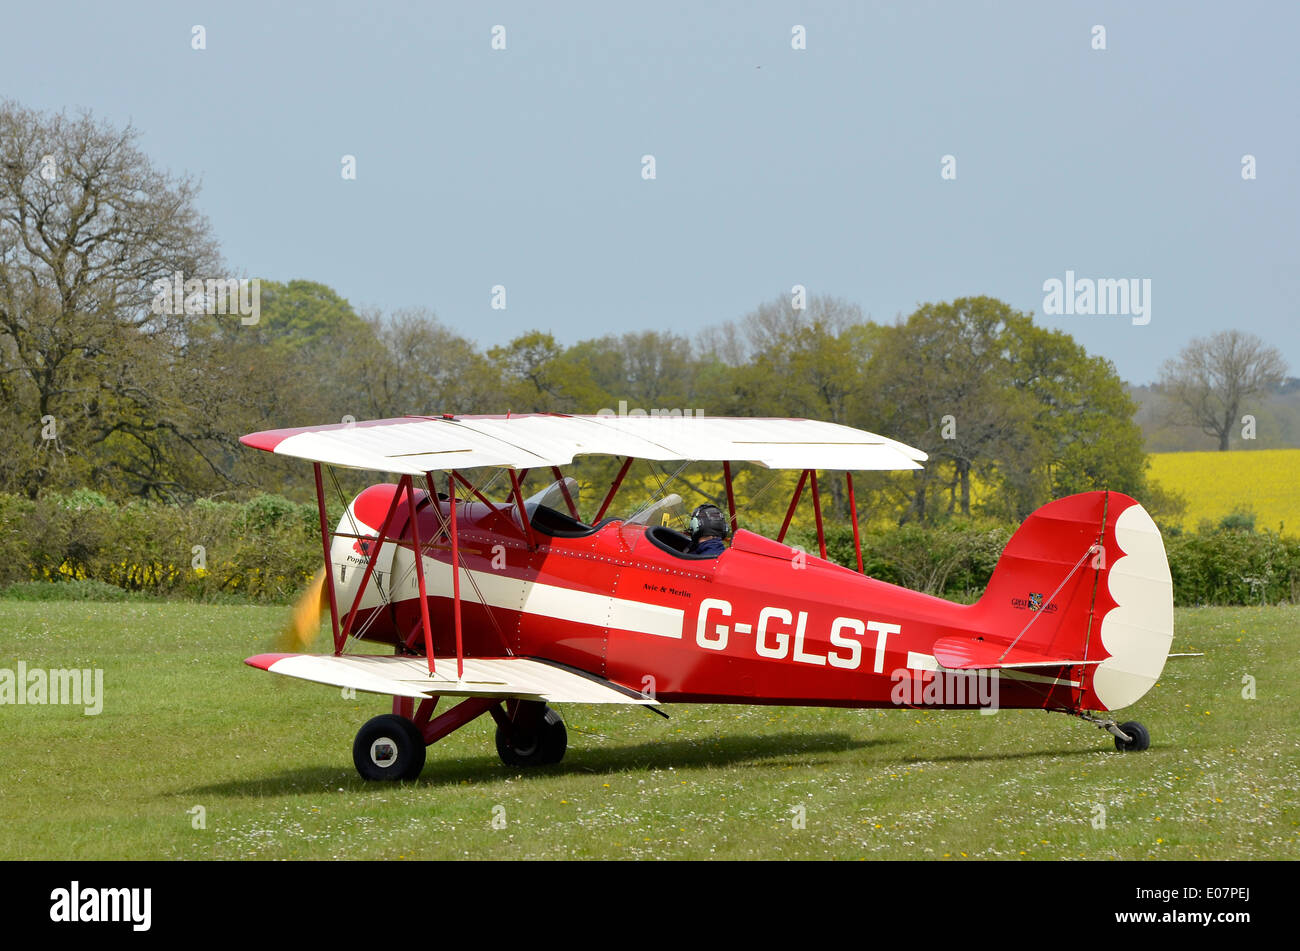 Replica Great Lakes Sports Trainer biplane, G-GLST at Popham Airfield, Hampshire - Stock Image